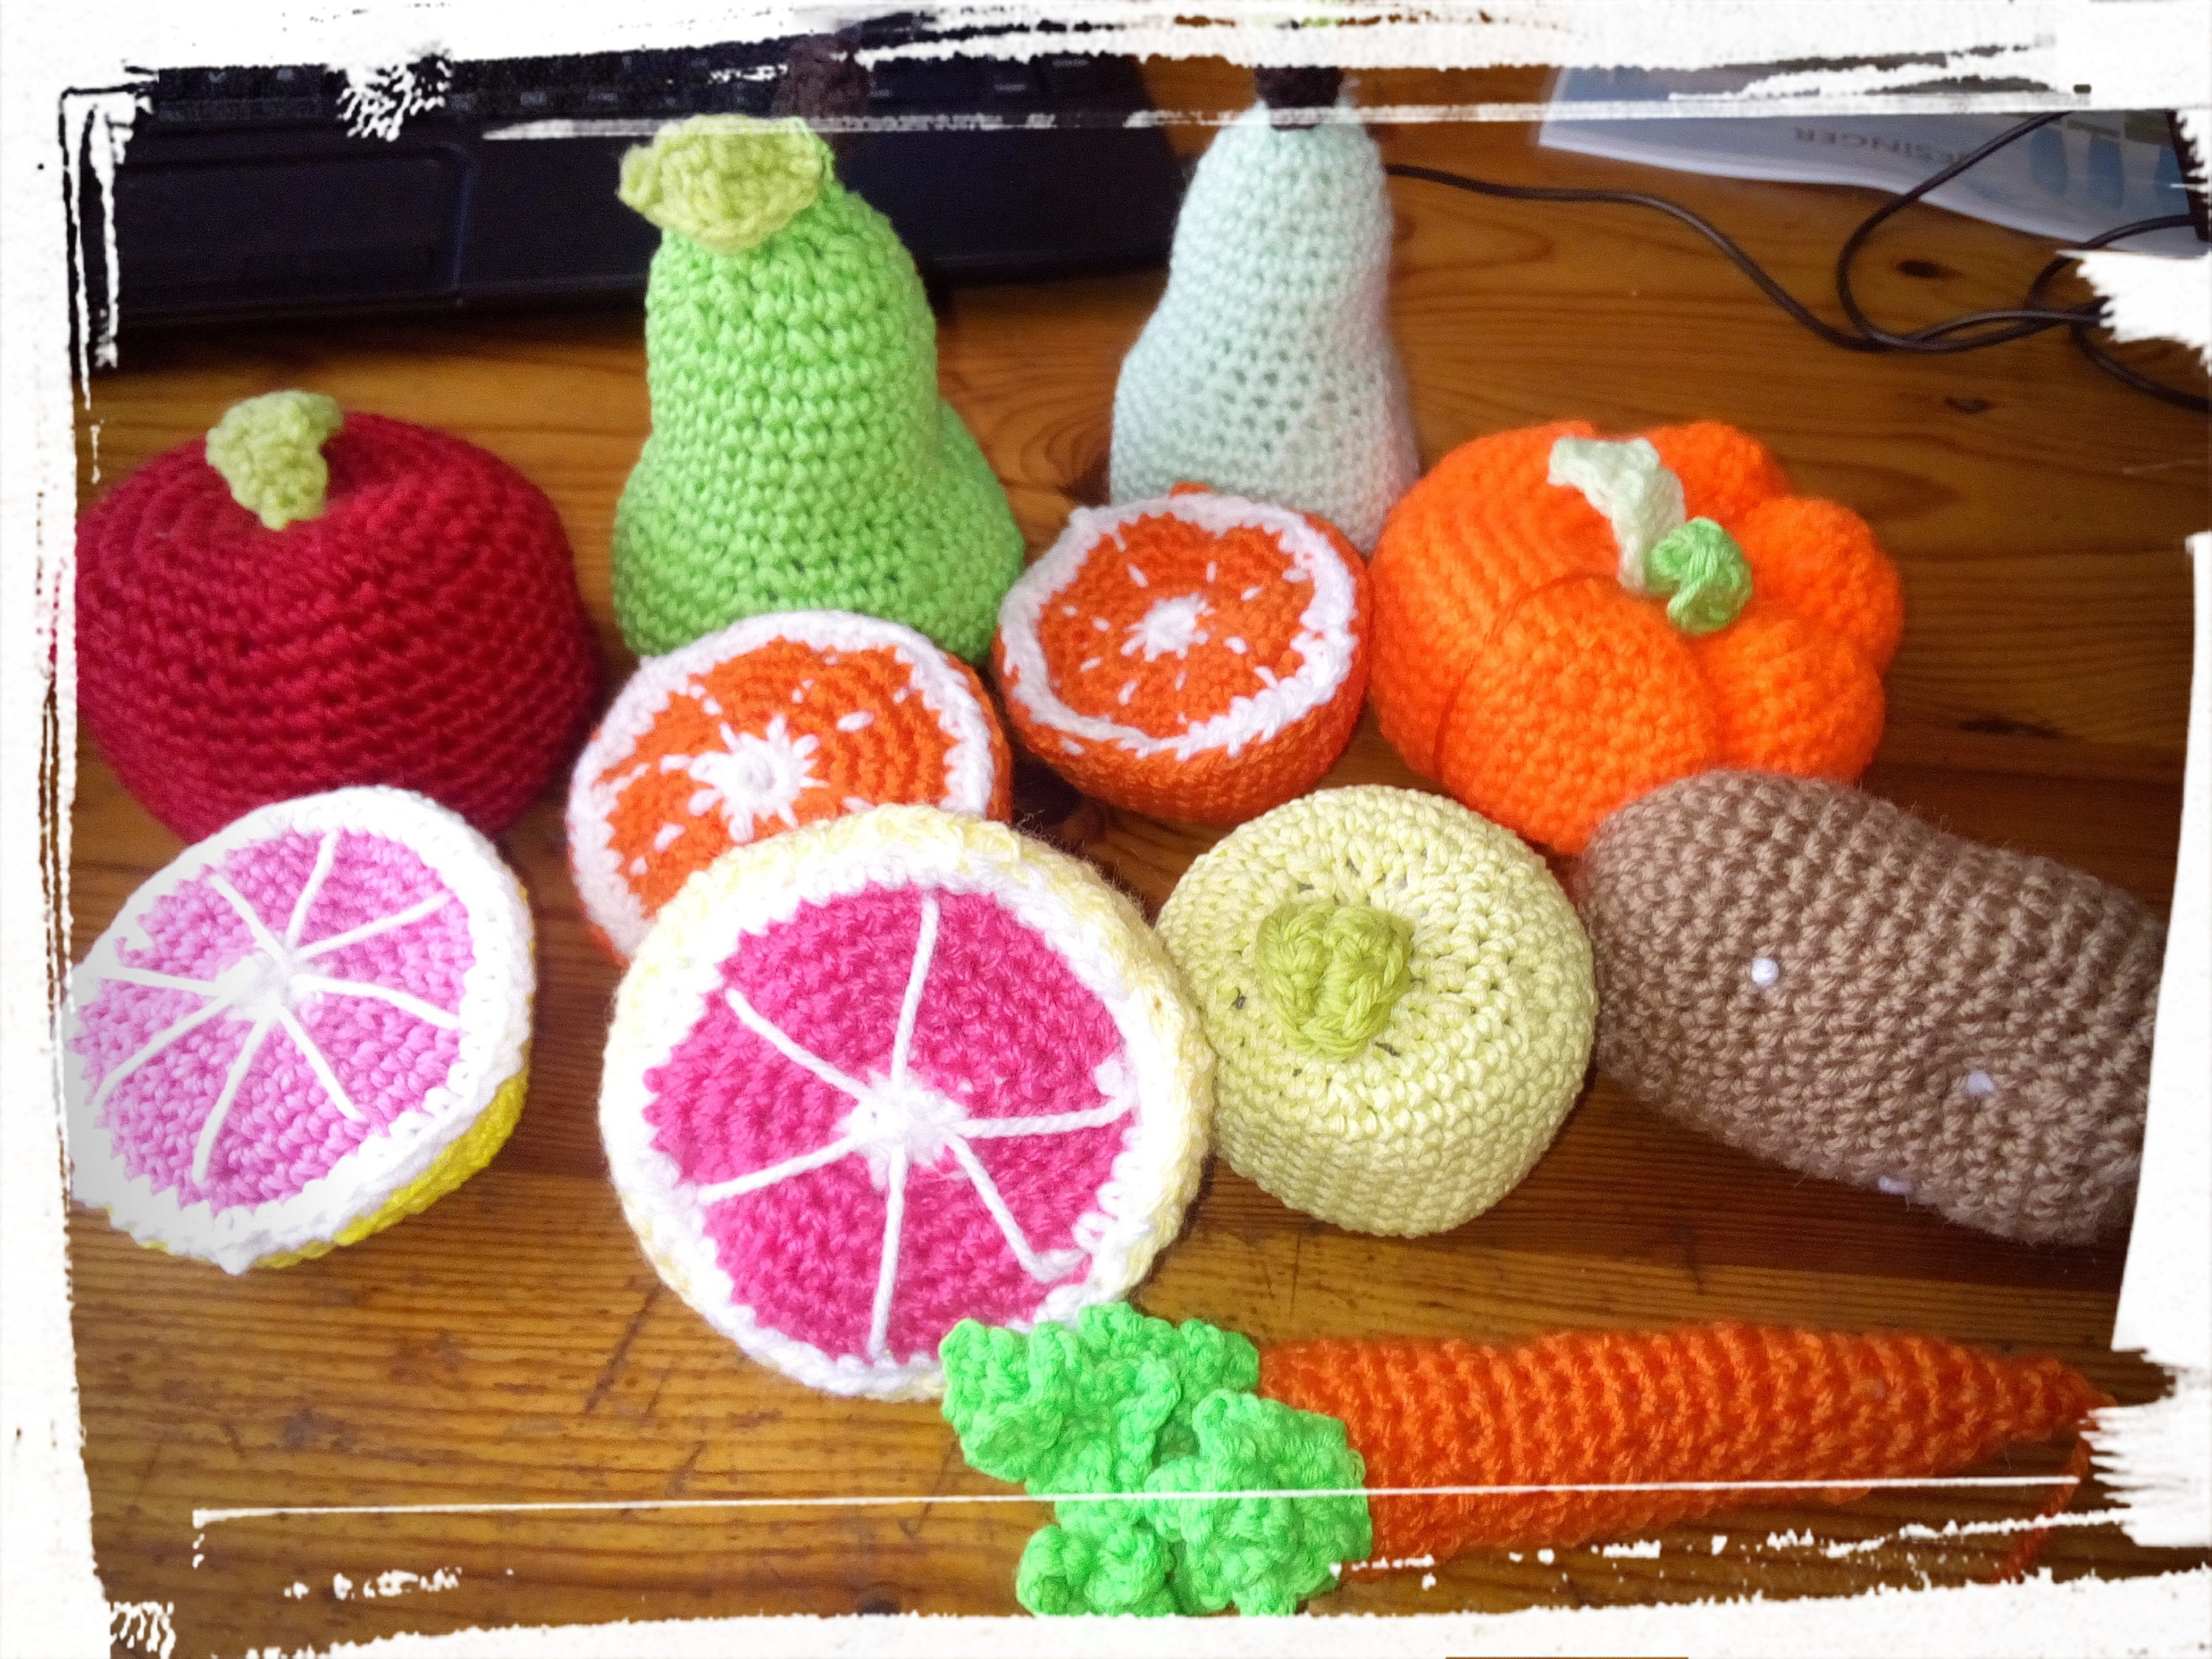 Crochet fruits and vegetables Crochet pattern #vegetables #fruits #amigurumi  #pattern #playfood | Crochet fruit, Crochet plant, Crochet patterns | 2250x3000